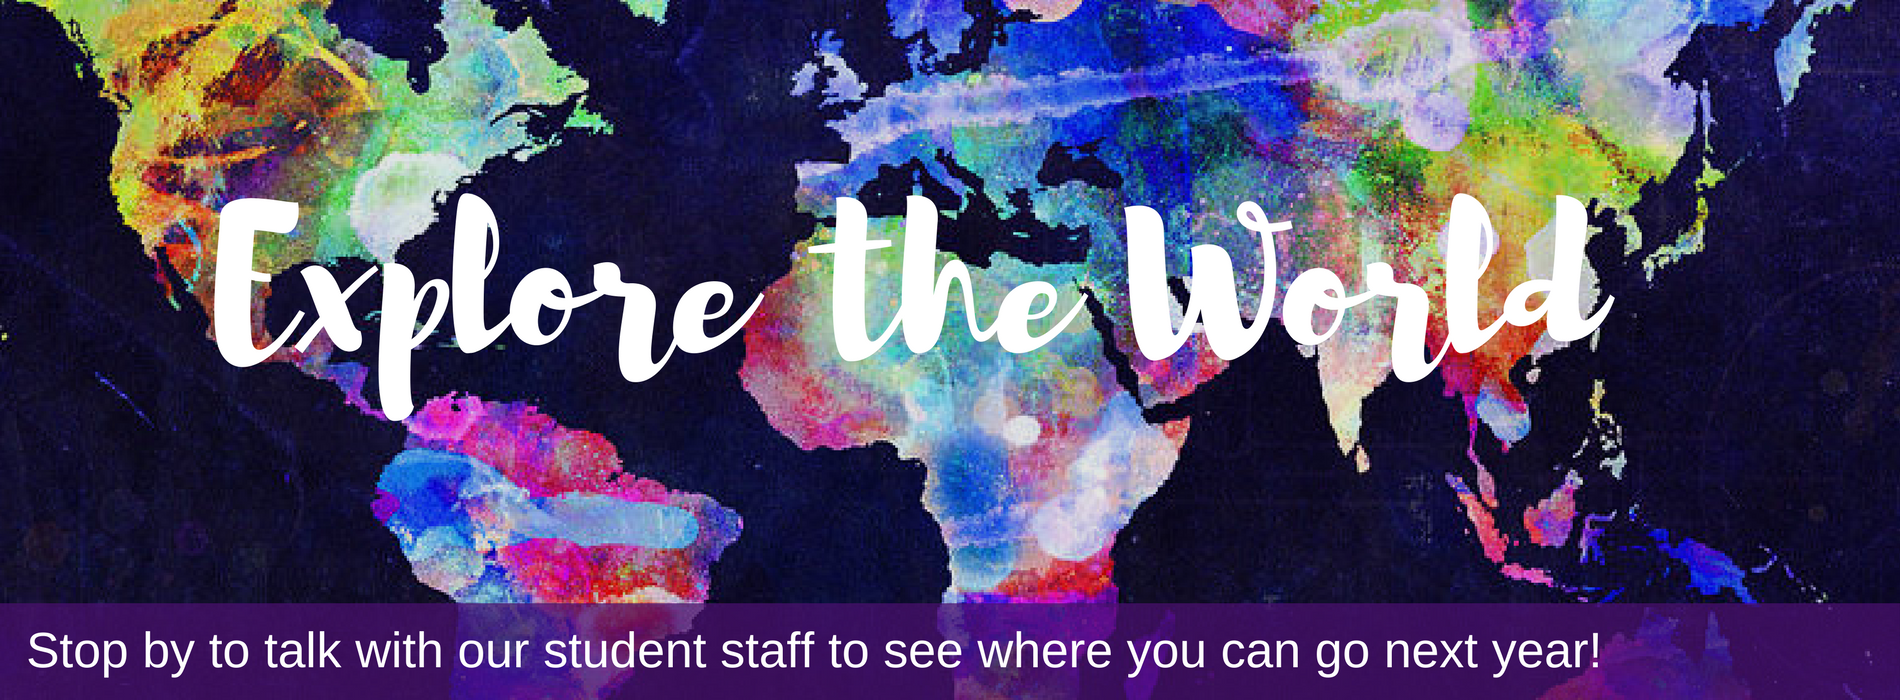 Come by our office to meet with our student staff, learn more about study abroad